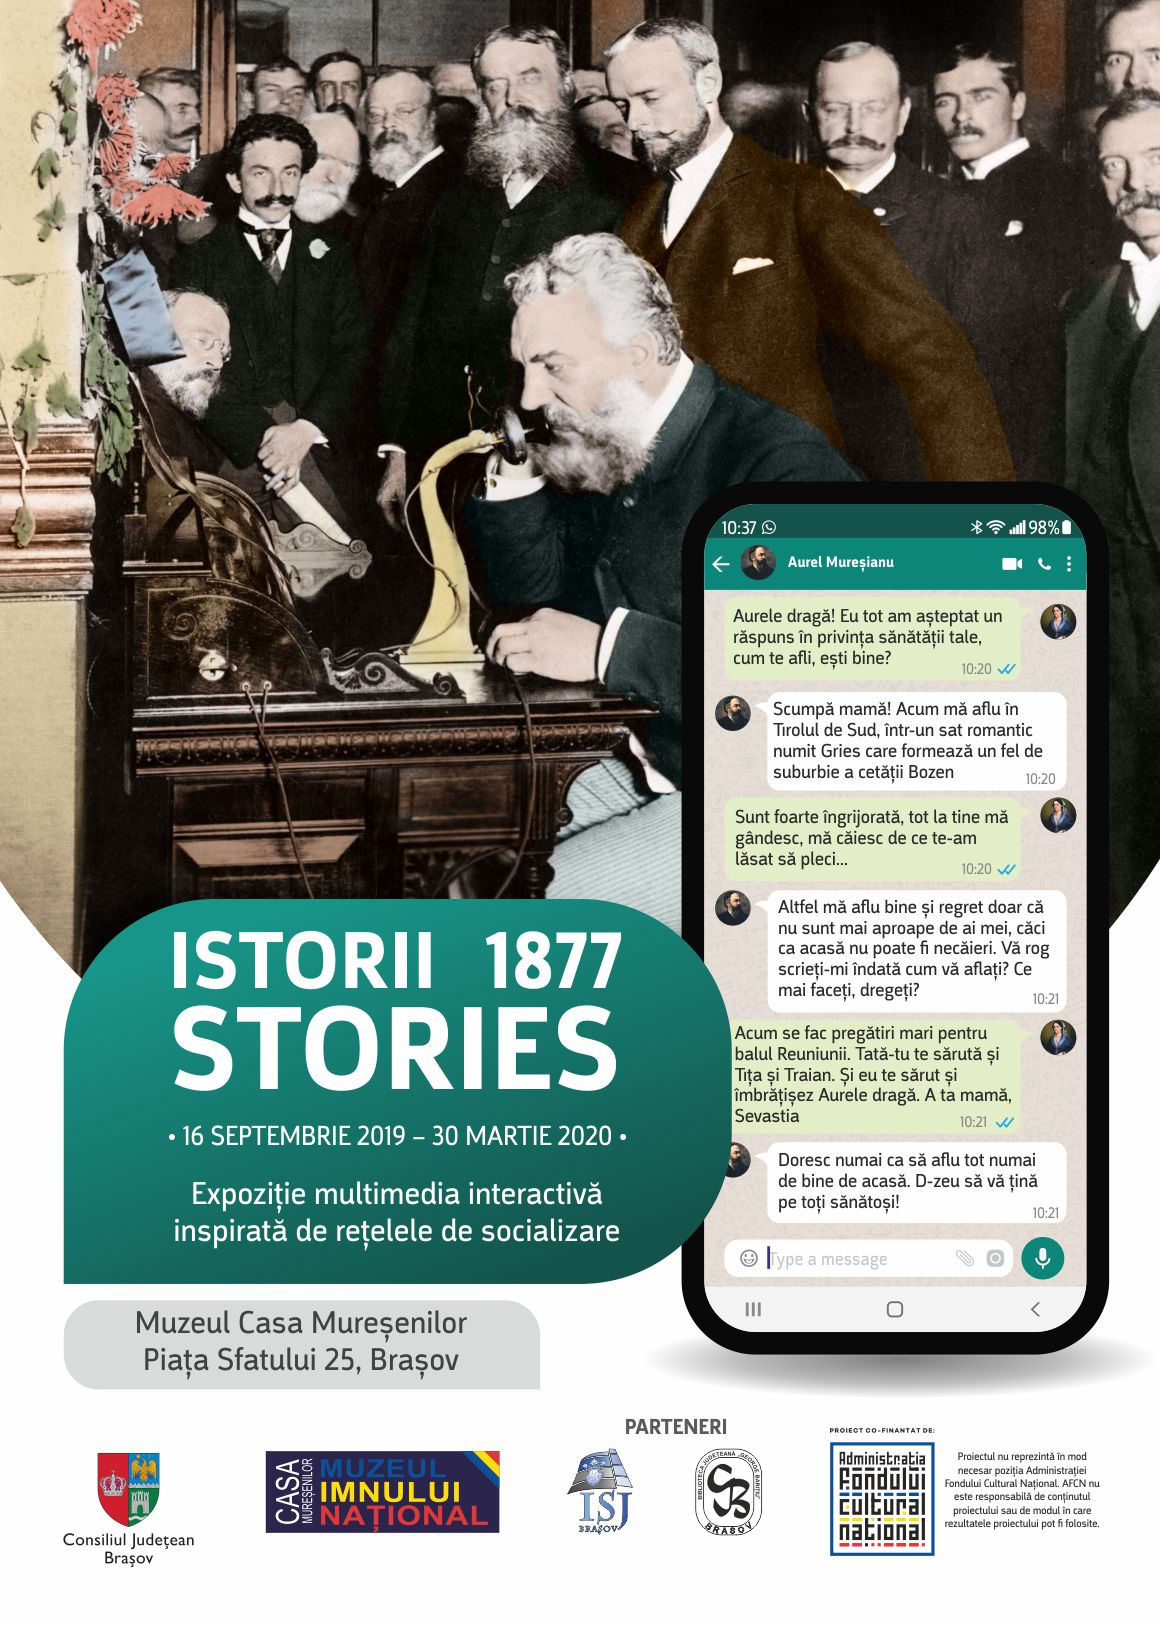 Poster A3 Istorii 1877 Stories final 2